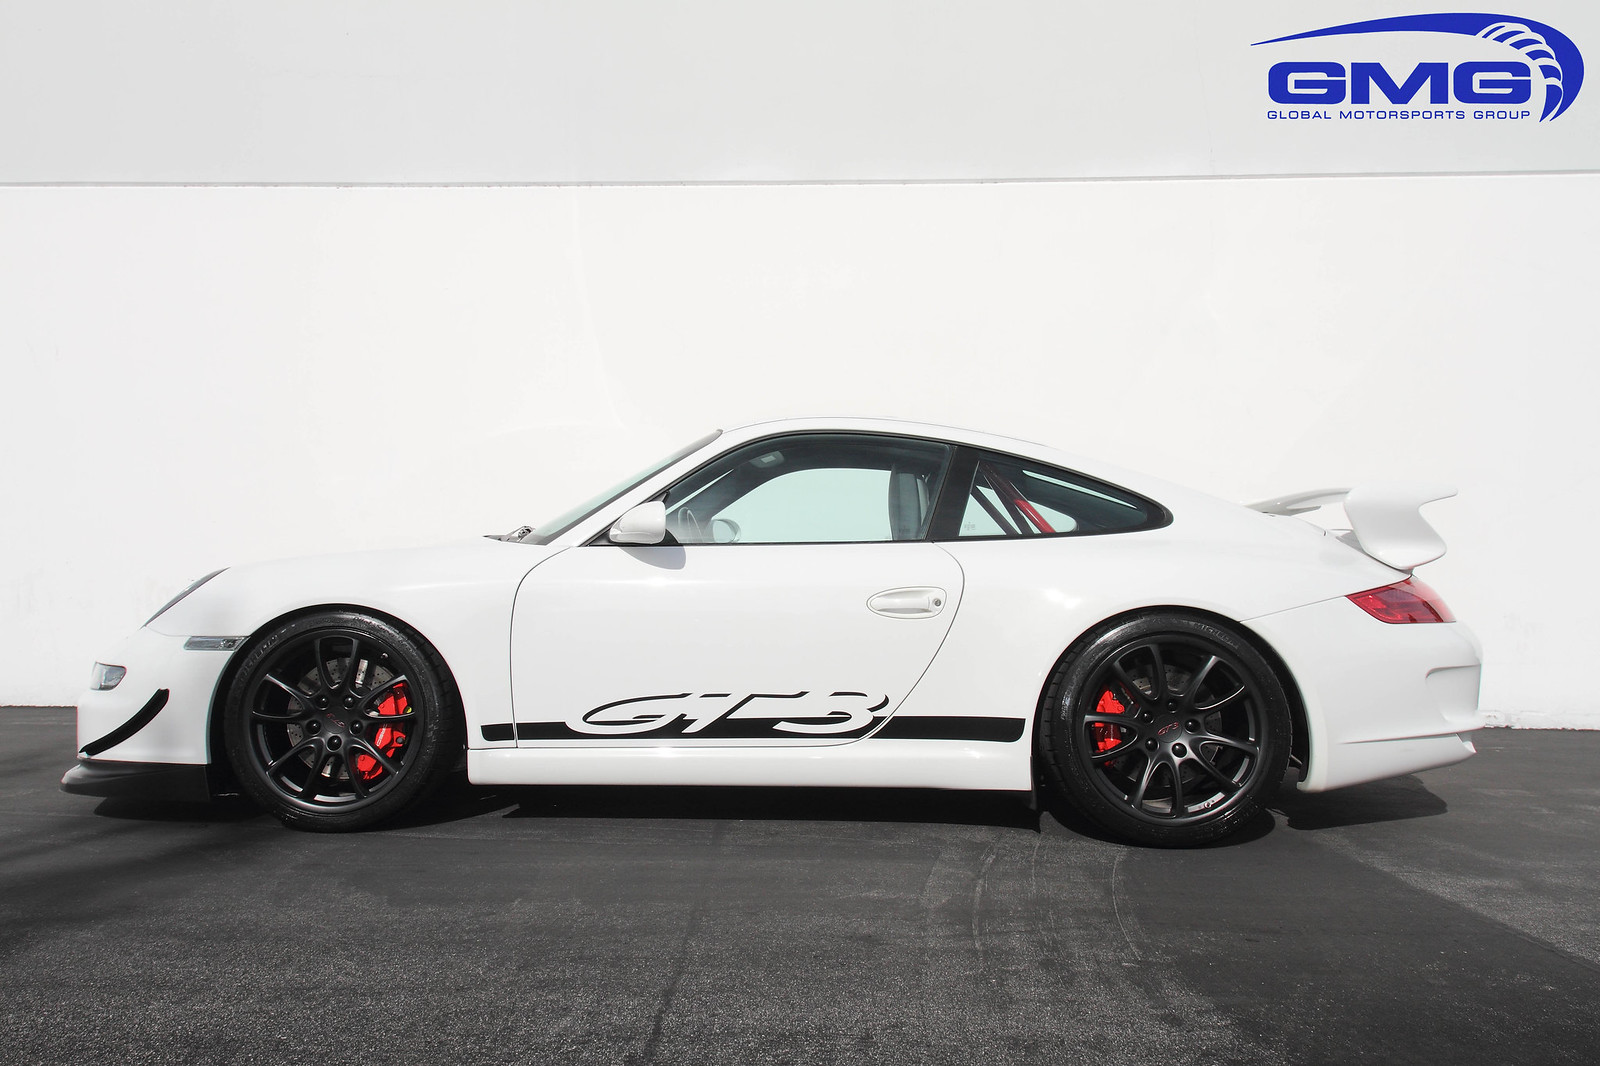 2007 white porsche 997 1 gt3 w red gmg rsr roll bar and cup car splitter rennlist porsche. Black Bedroom Furniture Sets. Home Design Ideas